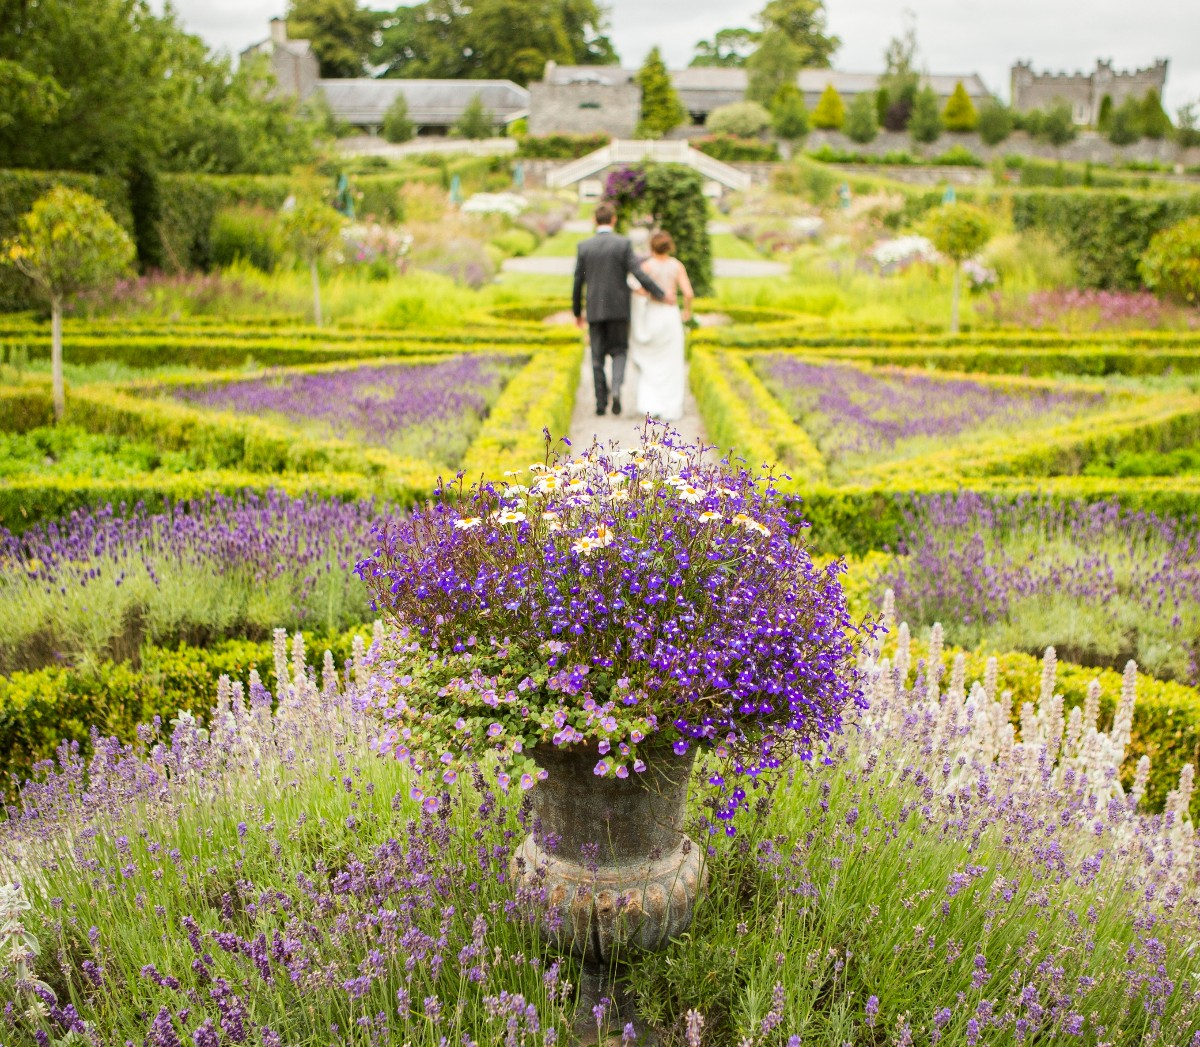 The walled garden at Castle Durrow